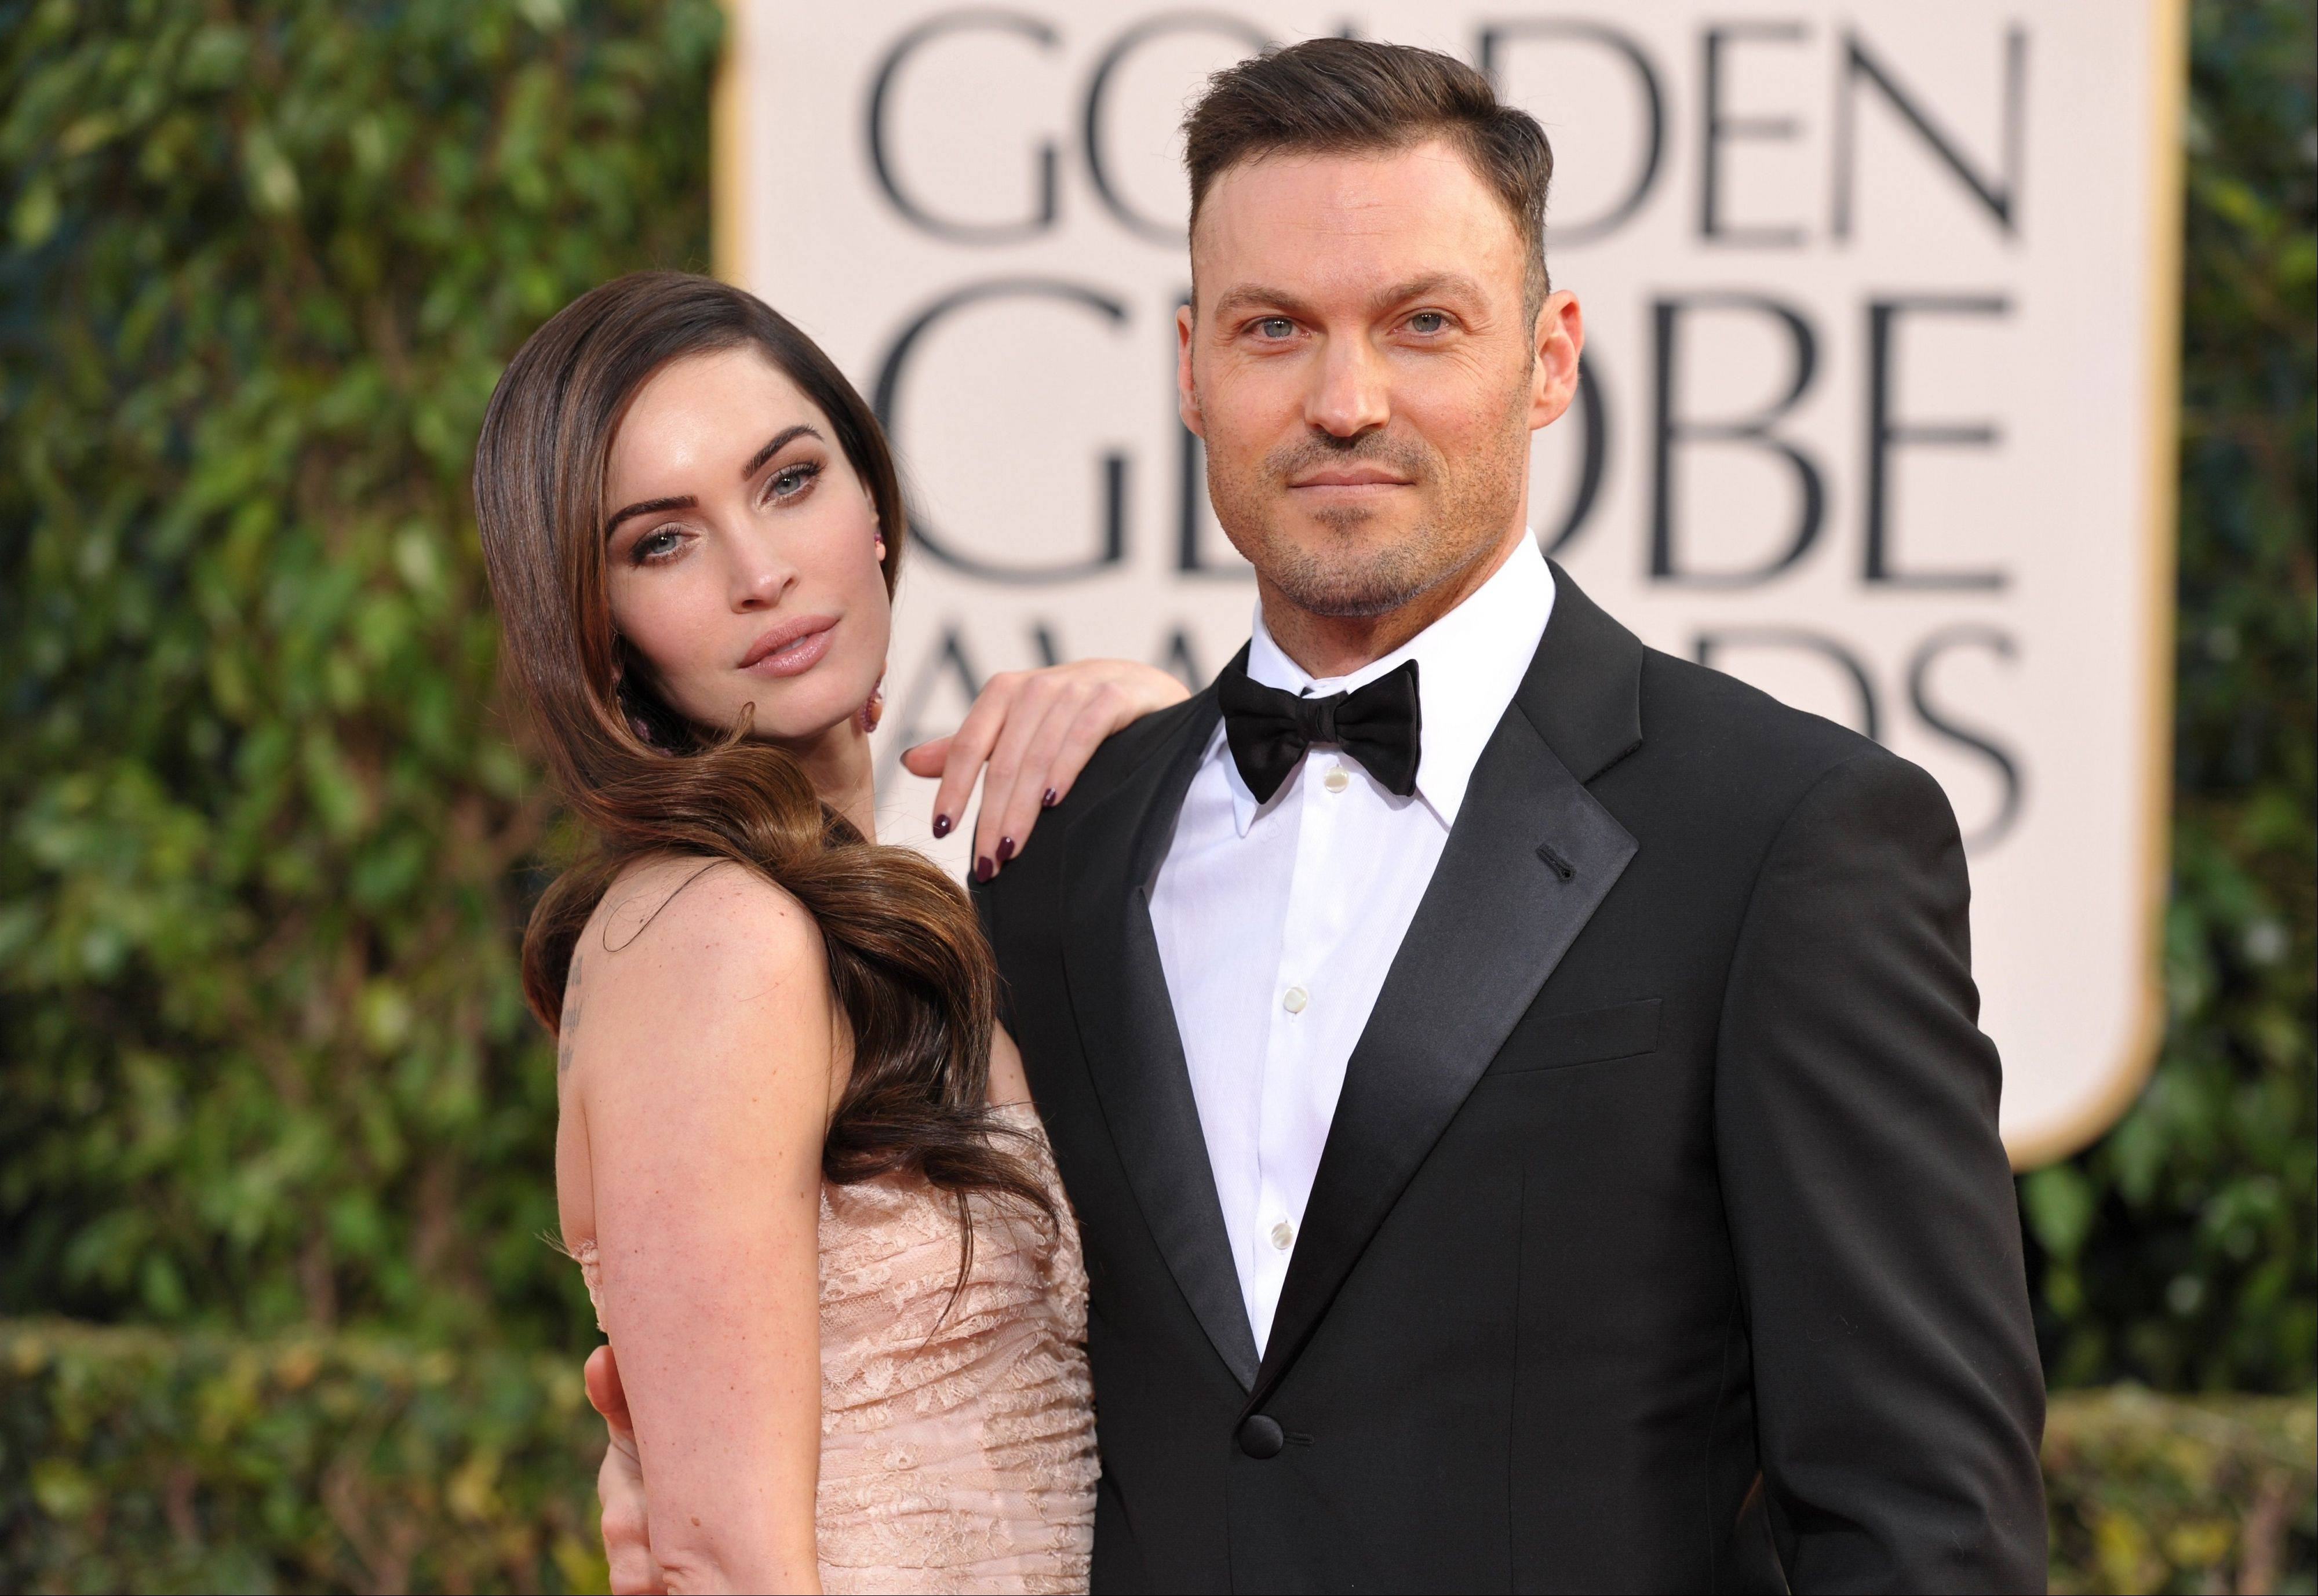 Actress Megan Fox and her husband, actor Brian Austin, Green arrive at the 70th Annual Golden Globe Awards at the Beverly Hilton Hotel on Sunday Jan. 13, 2013, in Beverly Hills, Calif.